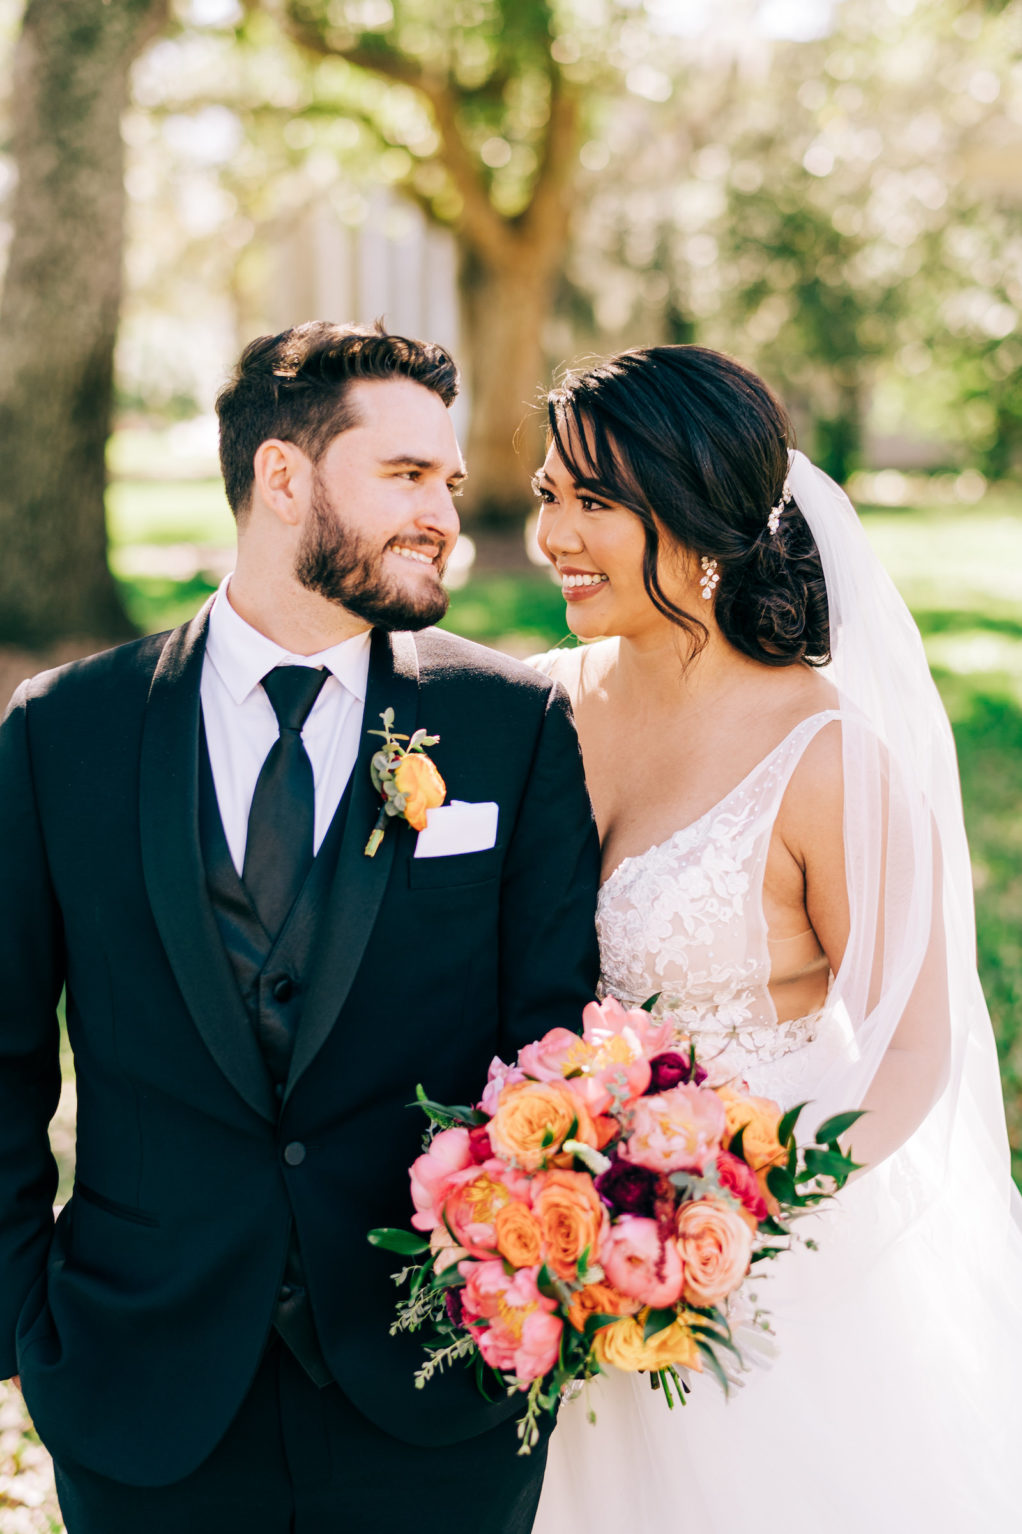 Classic Bride Wearing Plunging V Neckline Lace with Straps and Tulle A-Line Wedding Dress Holding Vibrant Colorful Pink, Orange Roses and Red Floral Bouquet, Groom in Black Tuxedo and Orange Rose Boutonniere   Tampa Bay Wedding Florist Monarch Events and Design